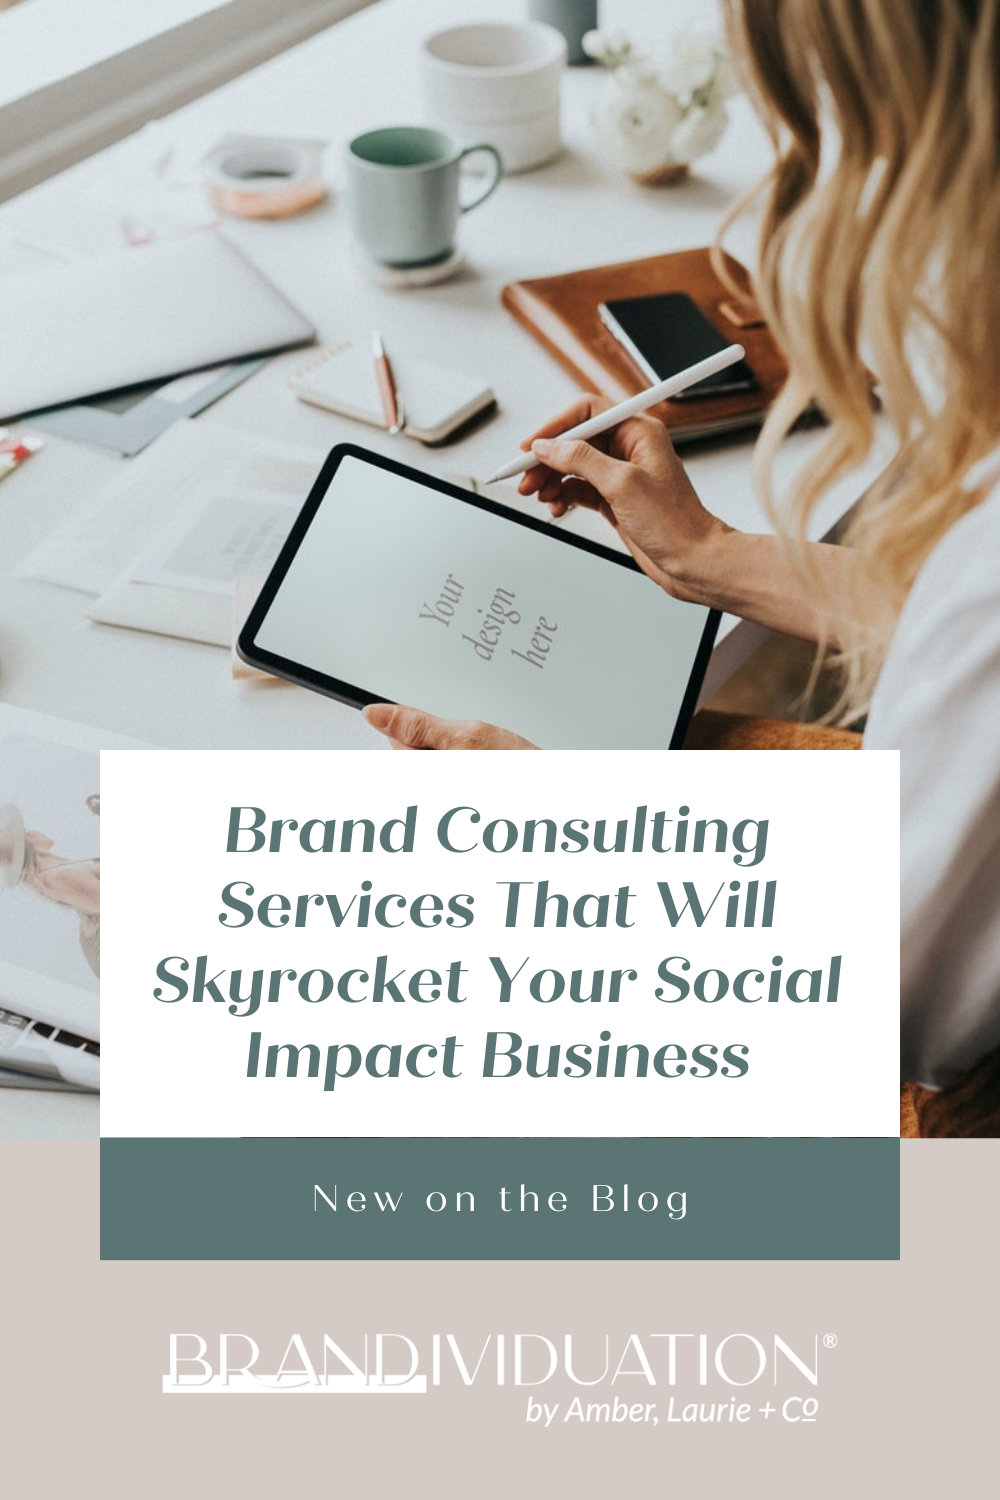 Brand Consulting Services That Will Skyrocket Your Social Impact Business